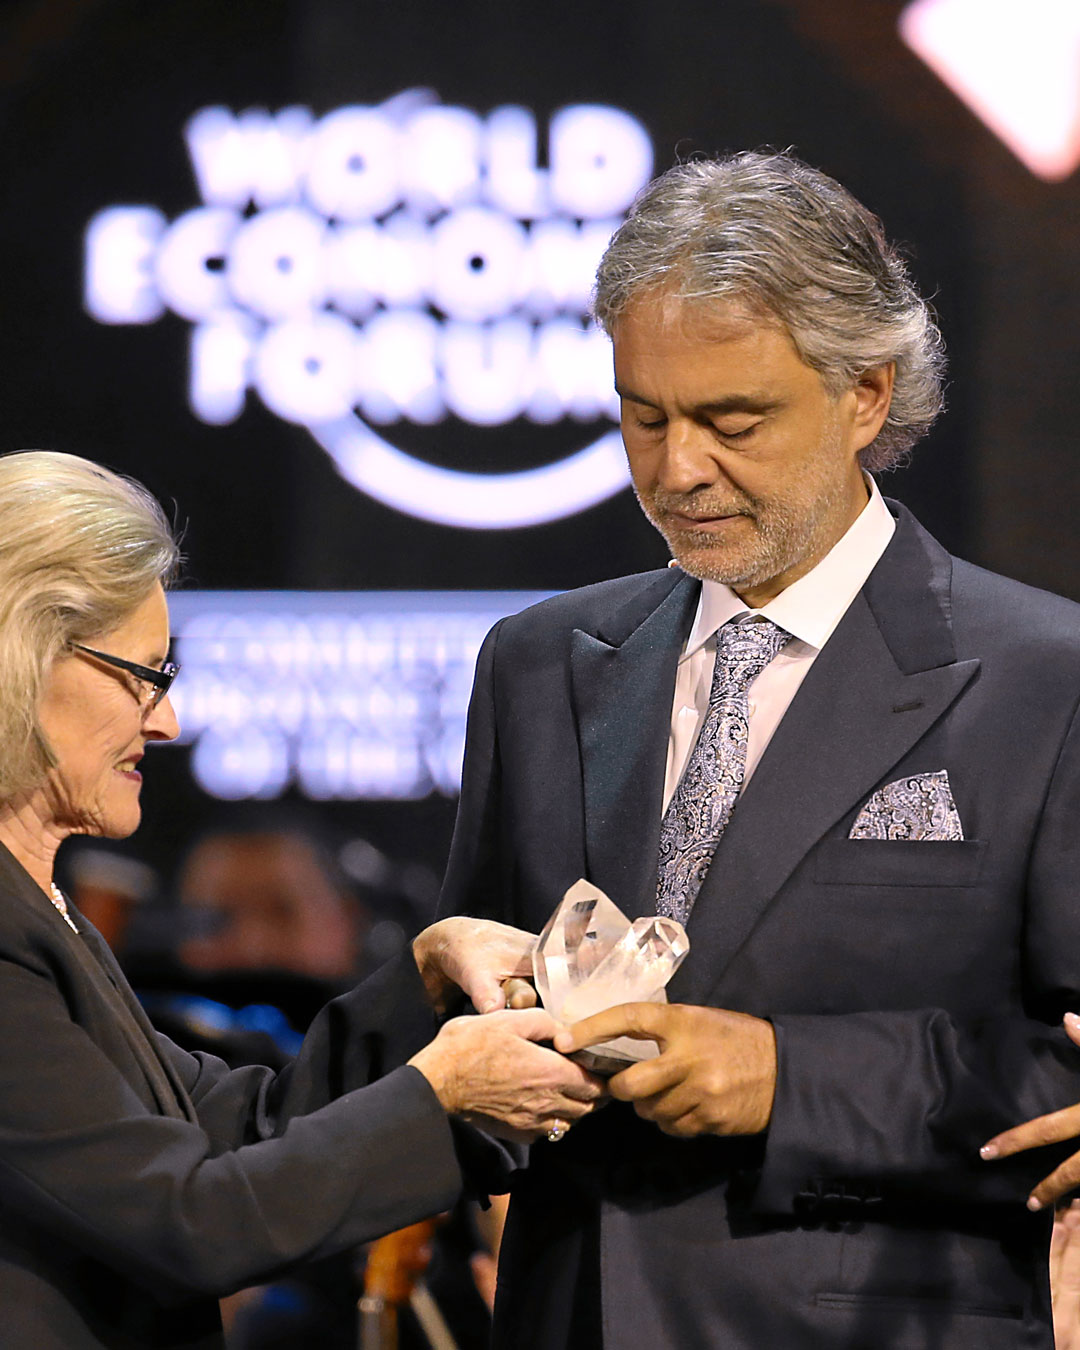 """Crystal Award"" at the World Economic Forum"